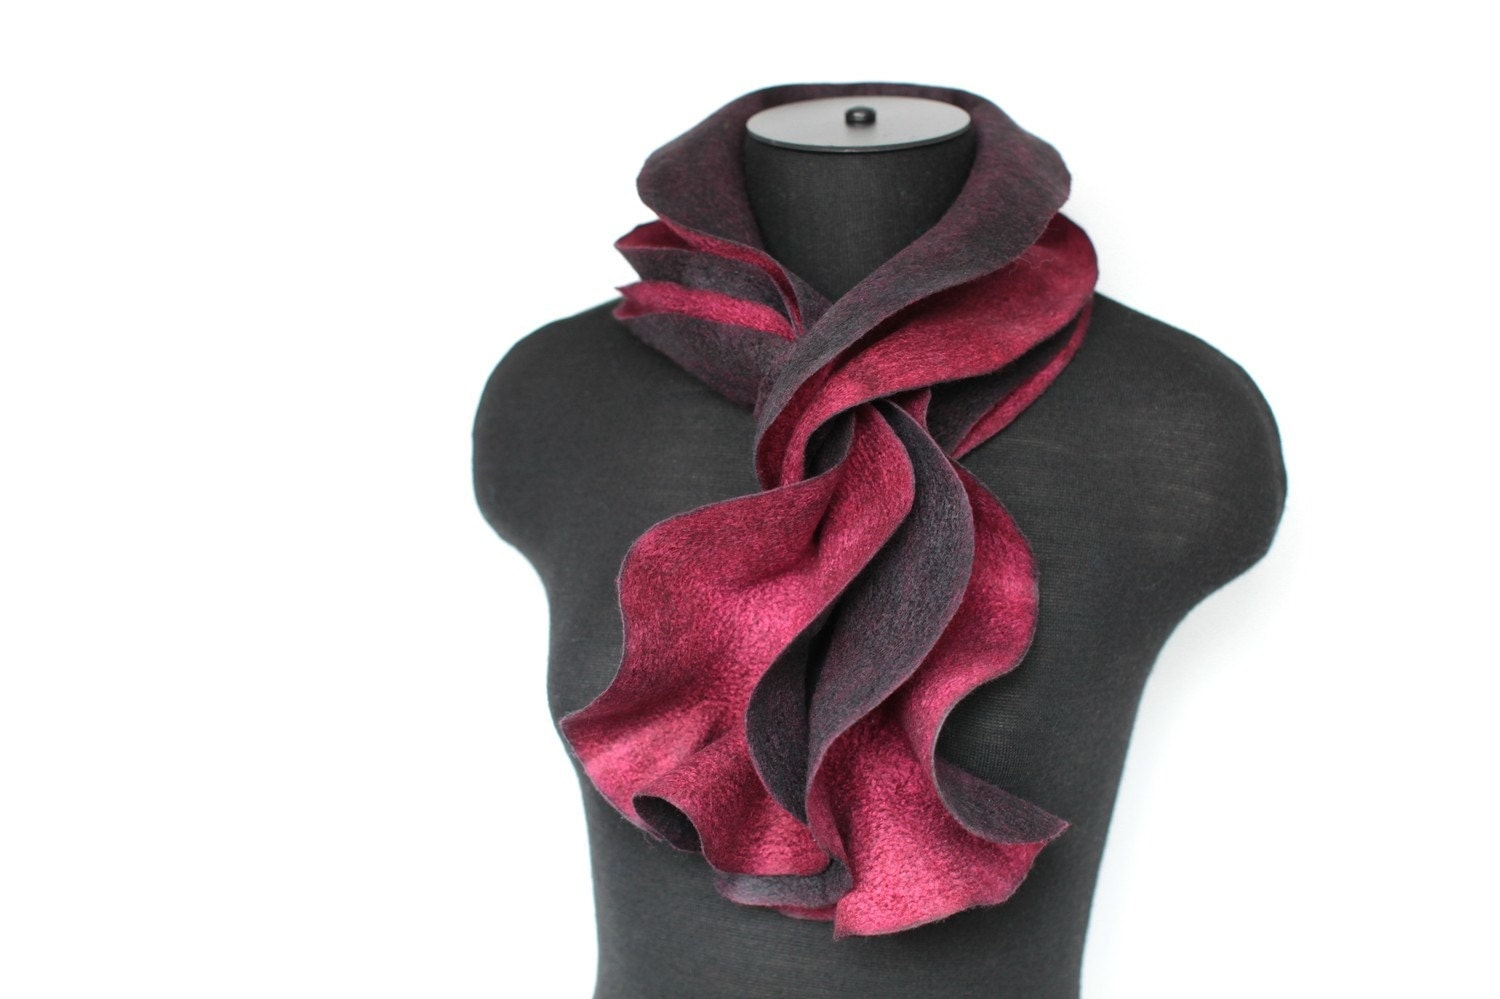 Felted Wavy Narrow Scarf Black & Red by FeltedPleasure on Etsy from etsy.com